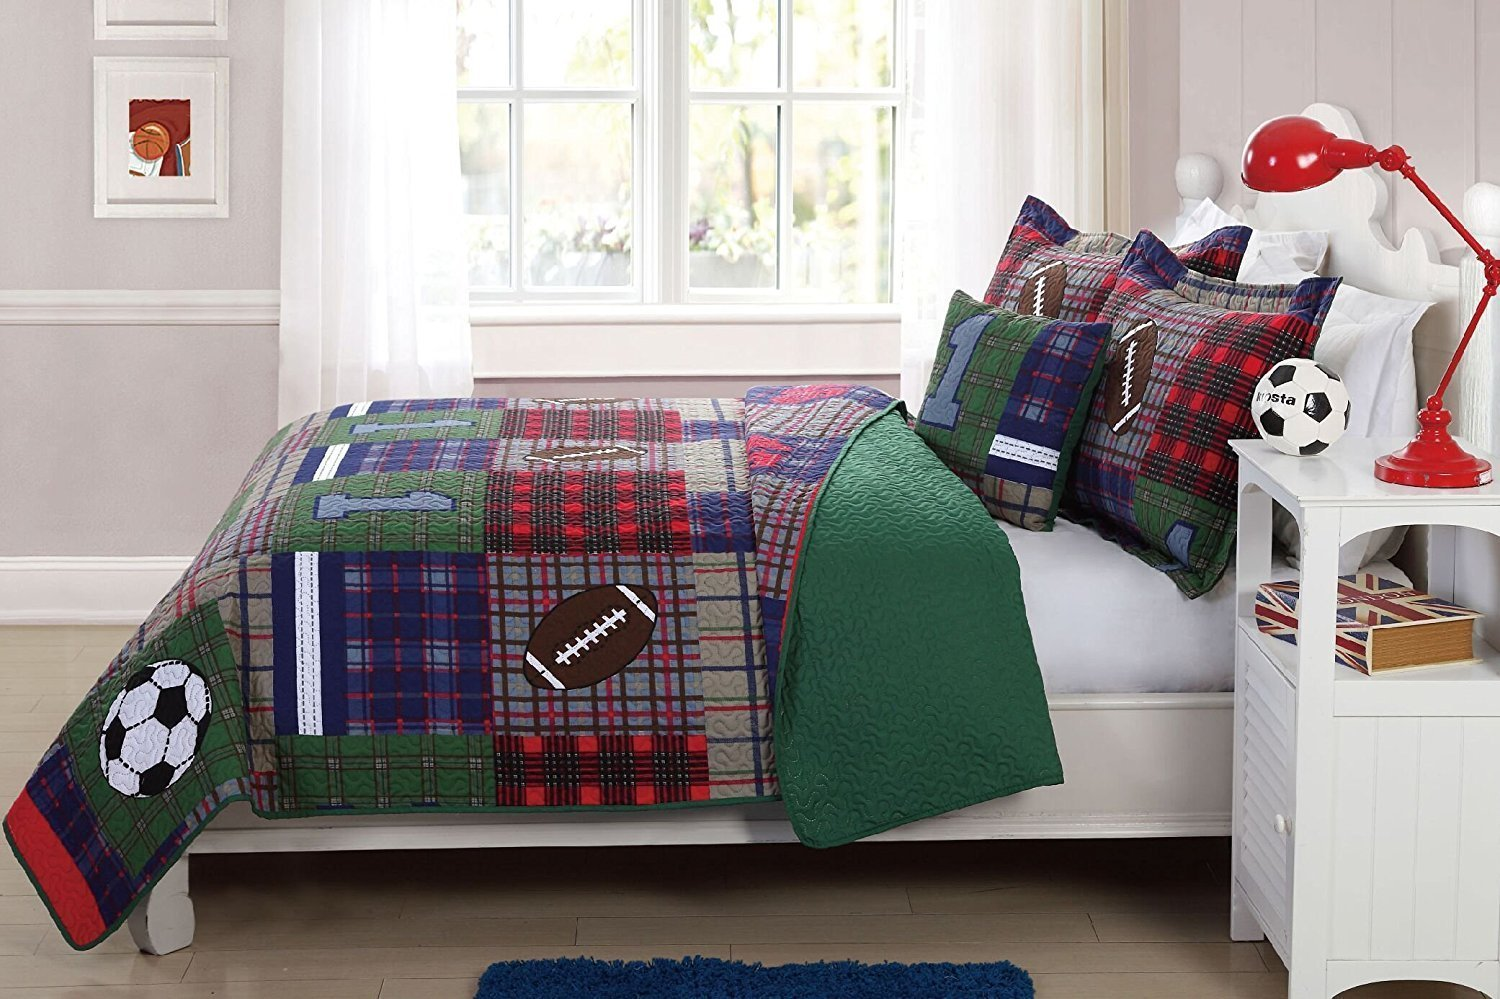 Elegant Home Patchwork Sports Soccer Football Design Multicolor Dark Blue Green Red Fun Colorful 3 Piece Quilt Bedspread Bedding Set with Decorative Pillow for Kids/Boys (Twin Size)